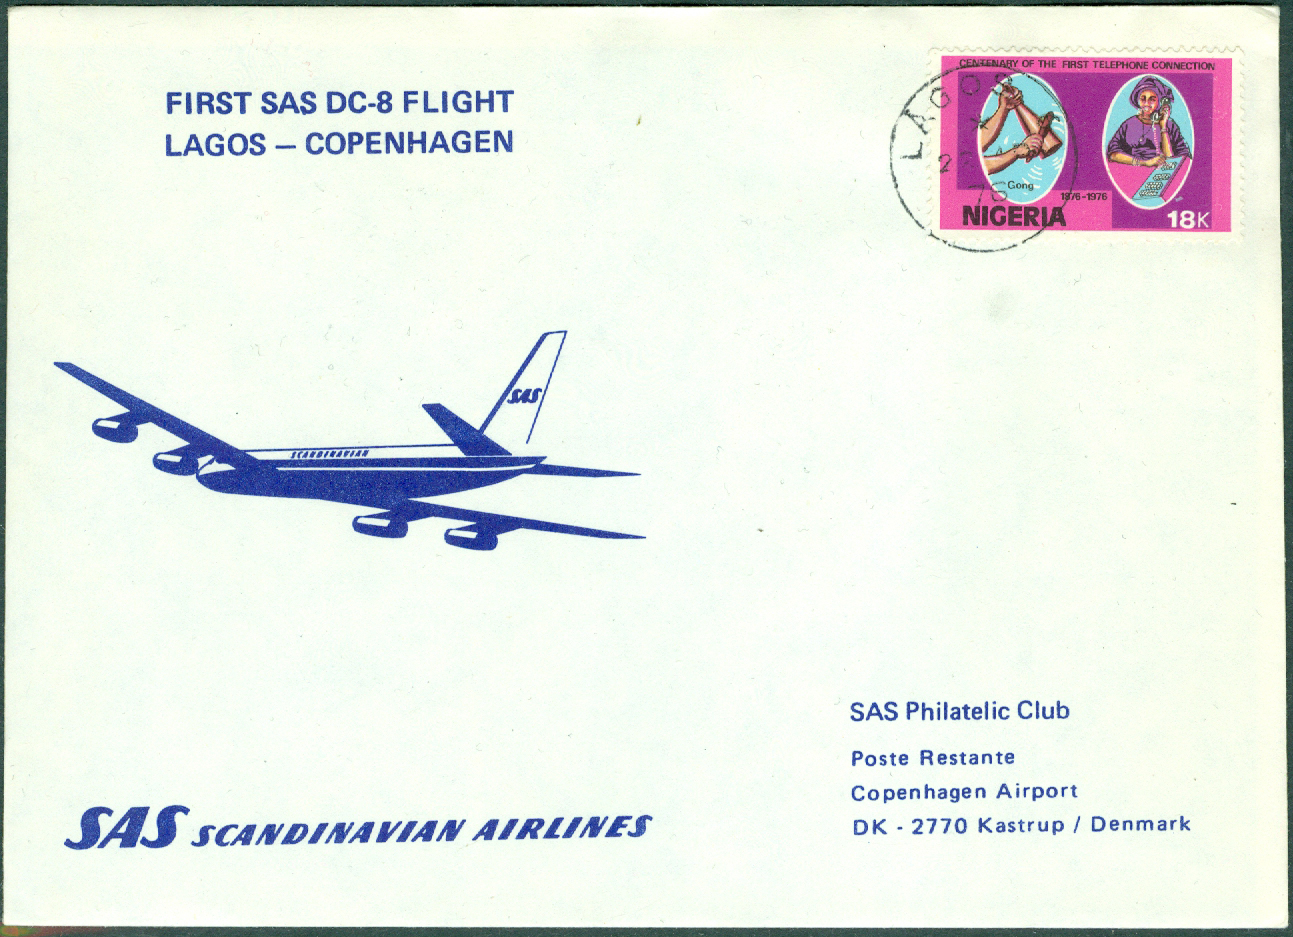 Nigeria - 22-4-70 - First SAS DC-8 Flight Lagos - Copenhagen